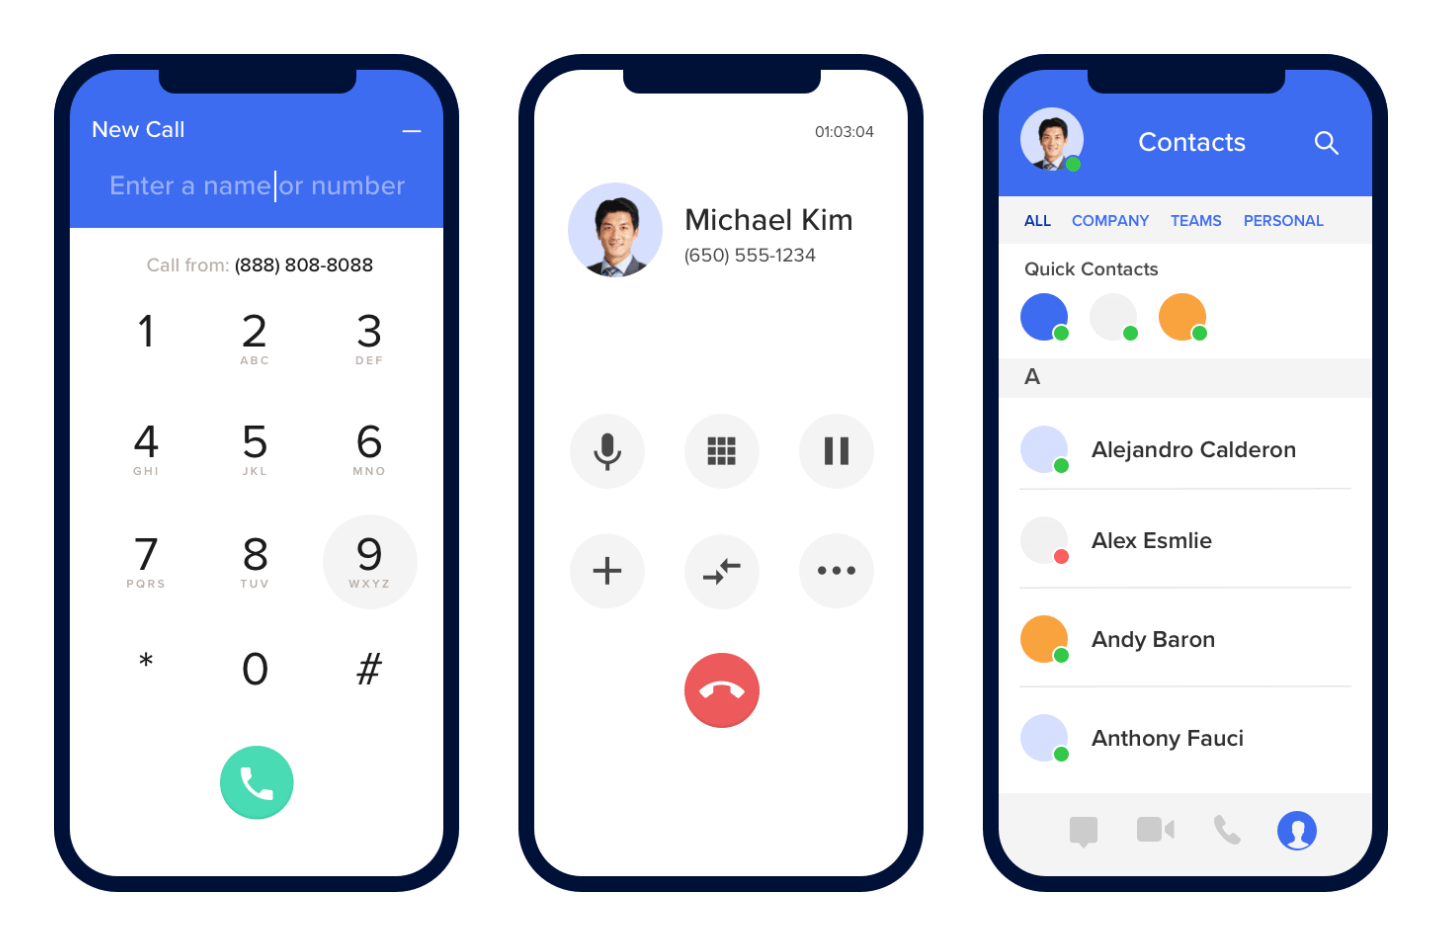 Ring Central UI